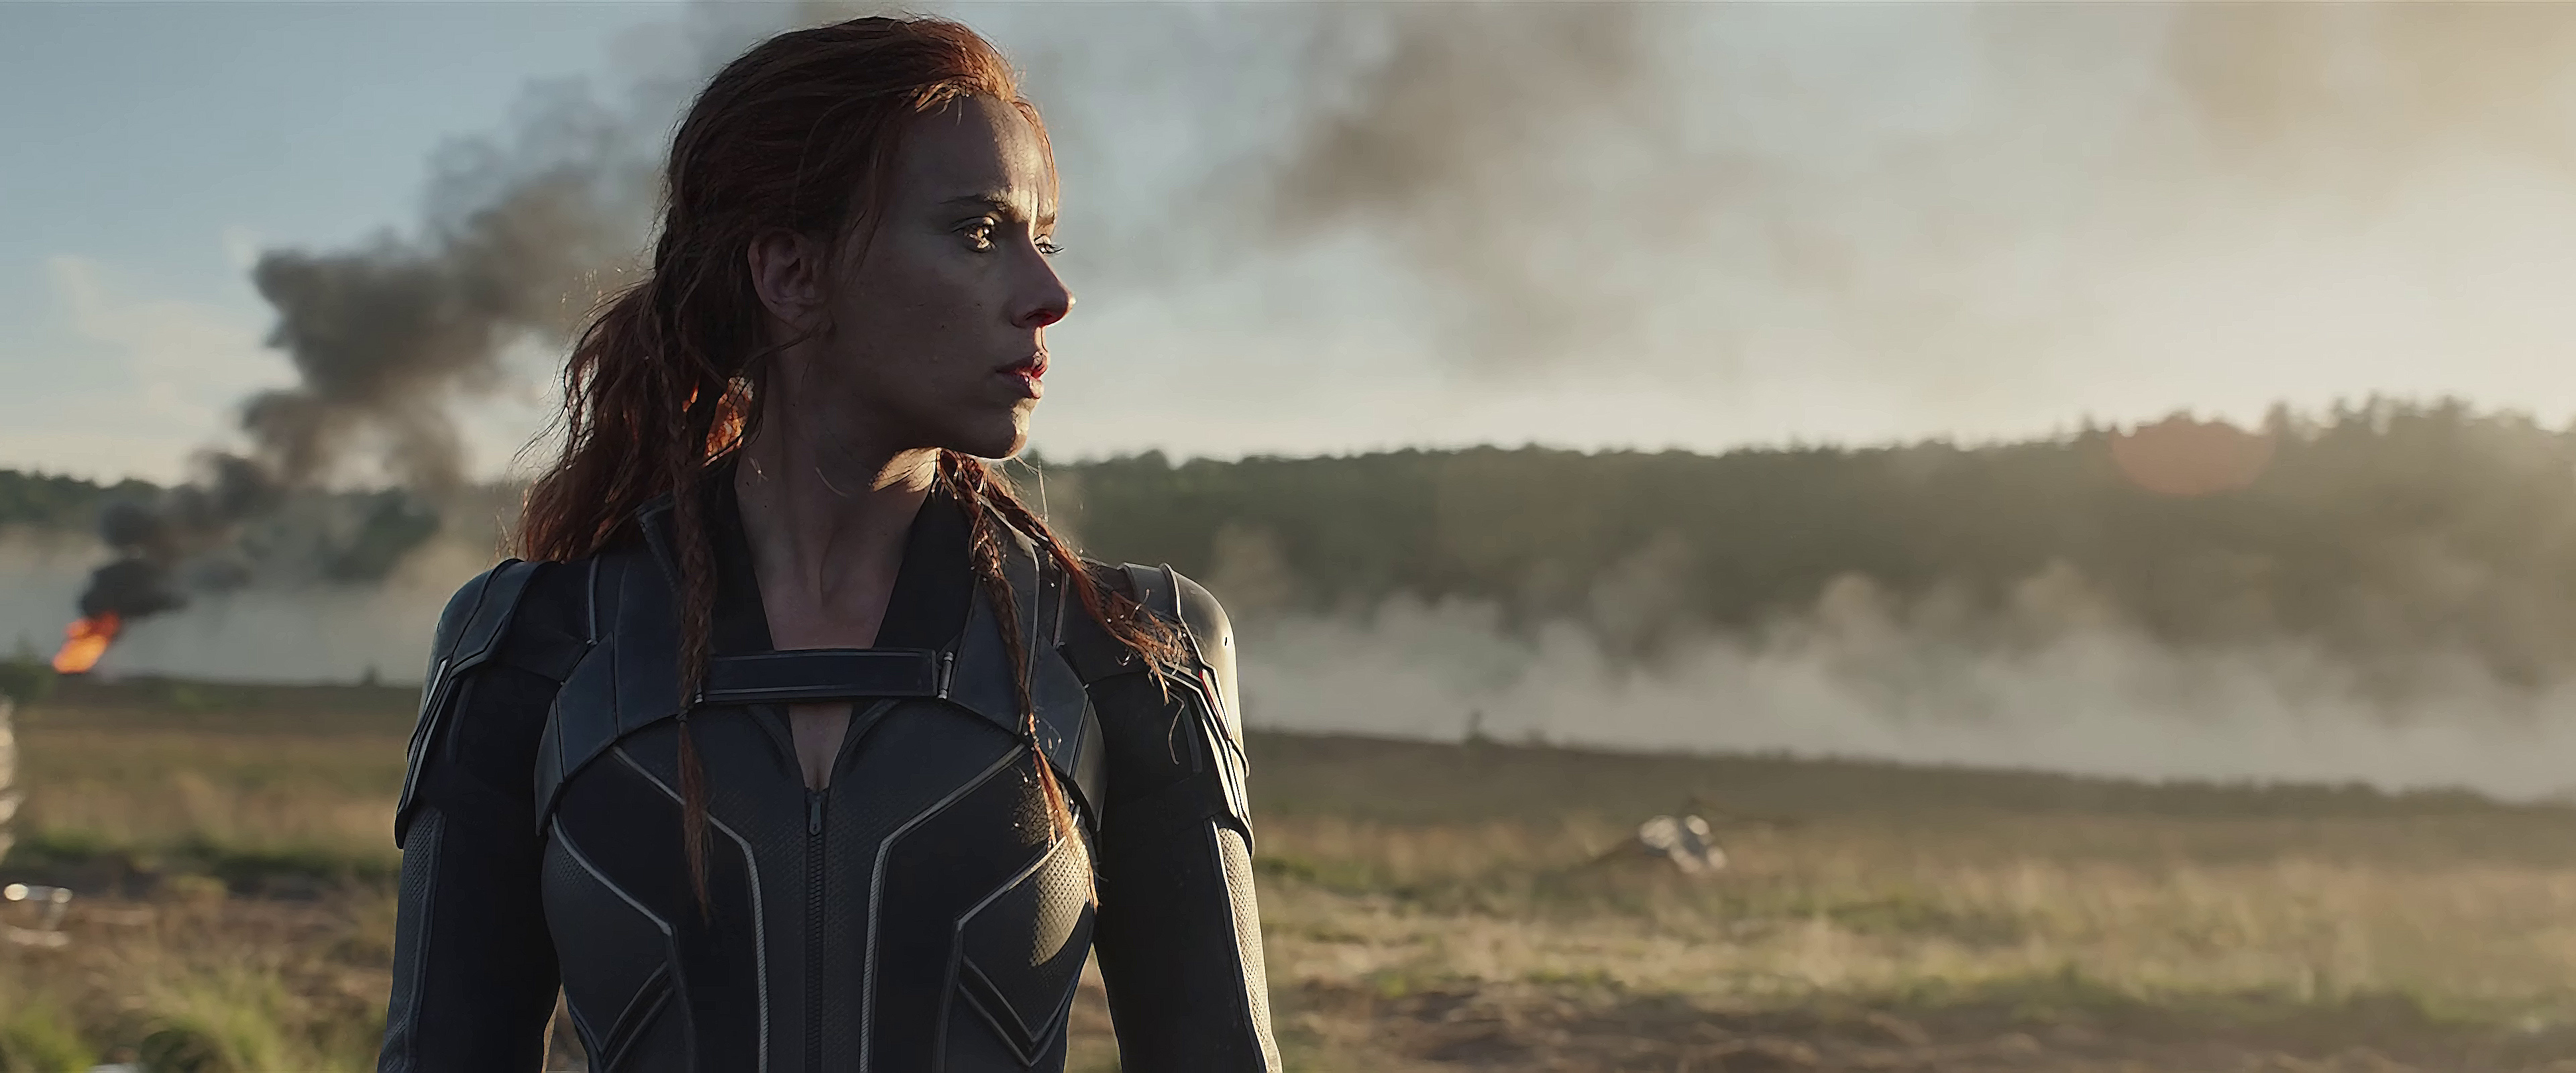 4K screencaps Fanart from Black Widow 2021 and a new poster 3840x1600